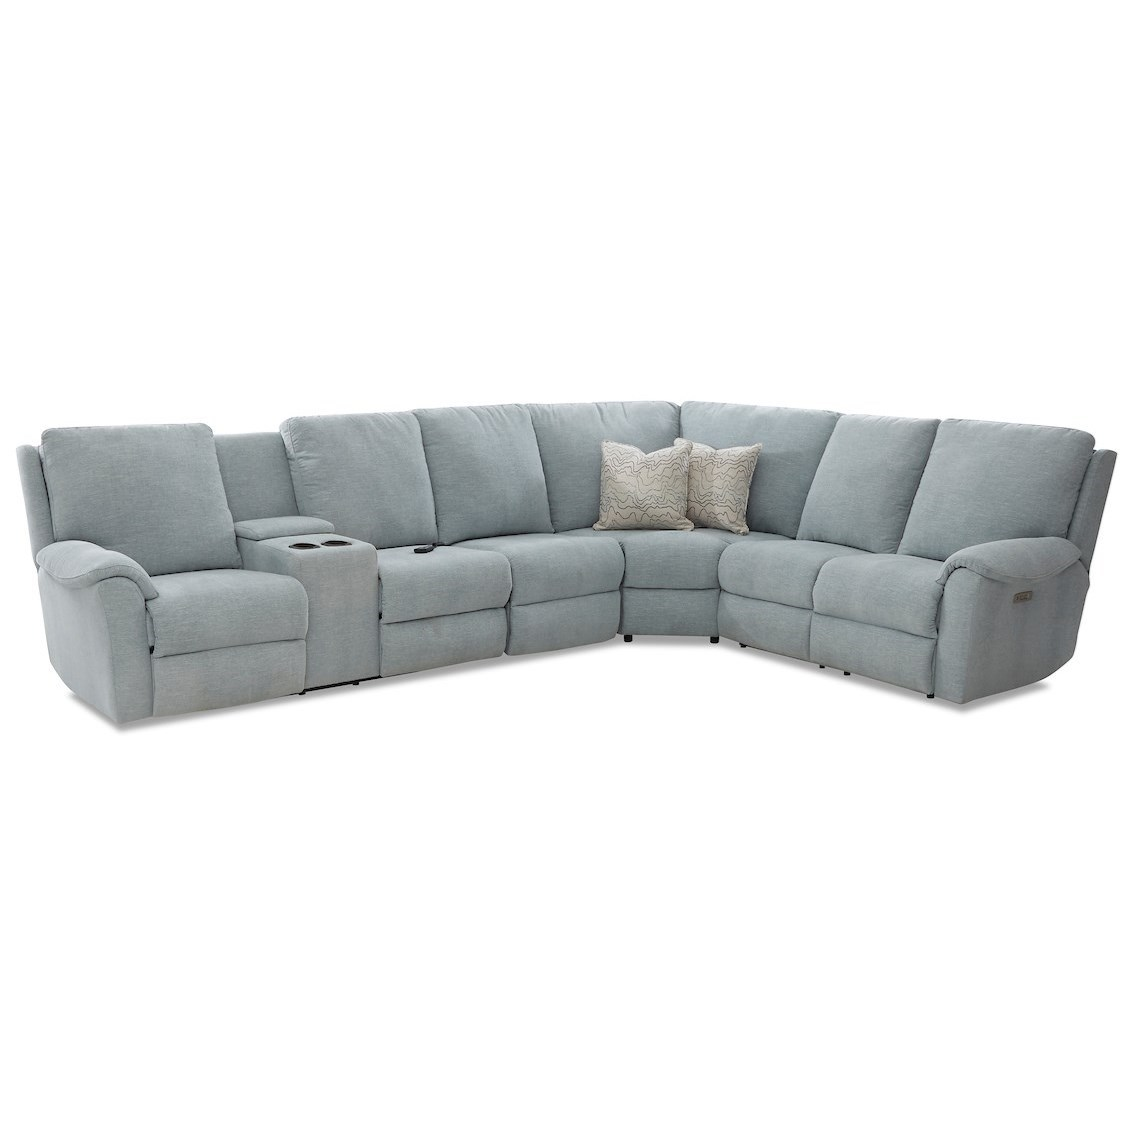 Davos Pwr Recline Sectional w/LAF Cnsl/Pwr Head/Lu by Klaussner at Johnny Janosik